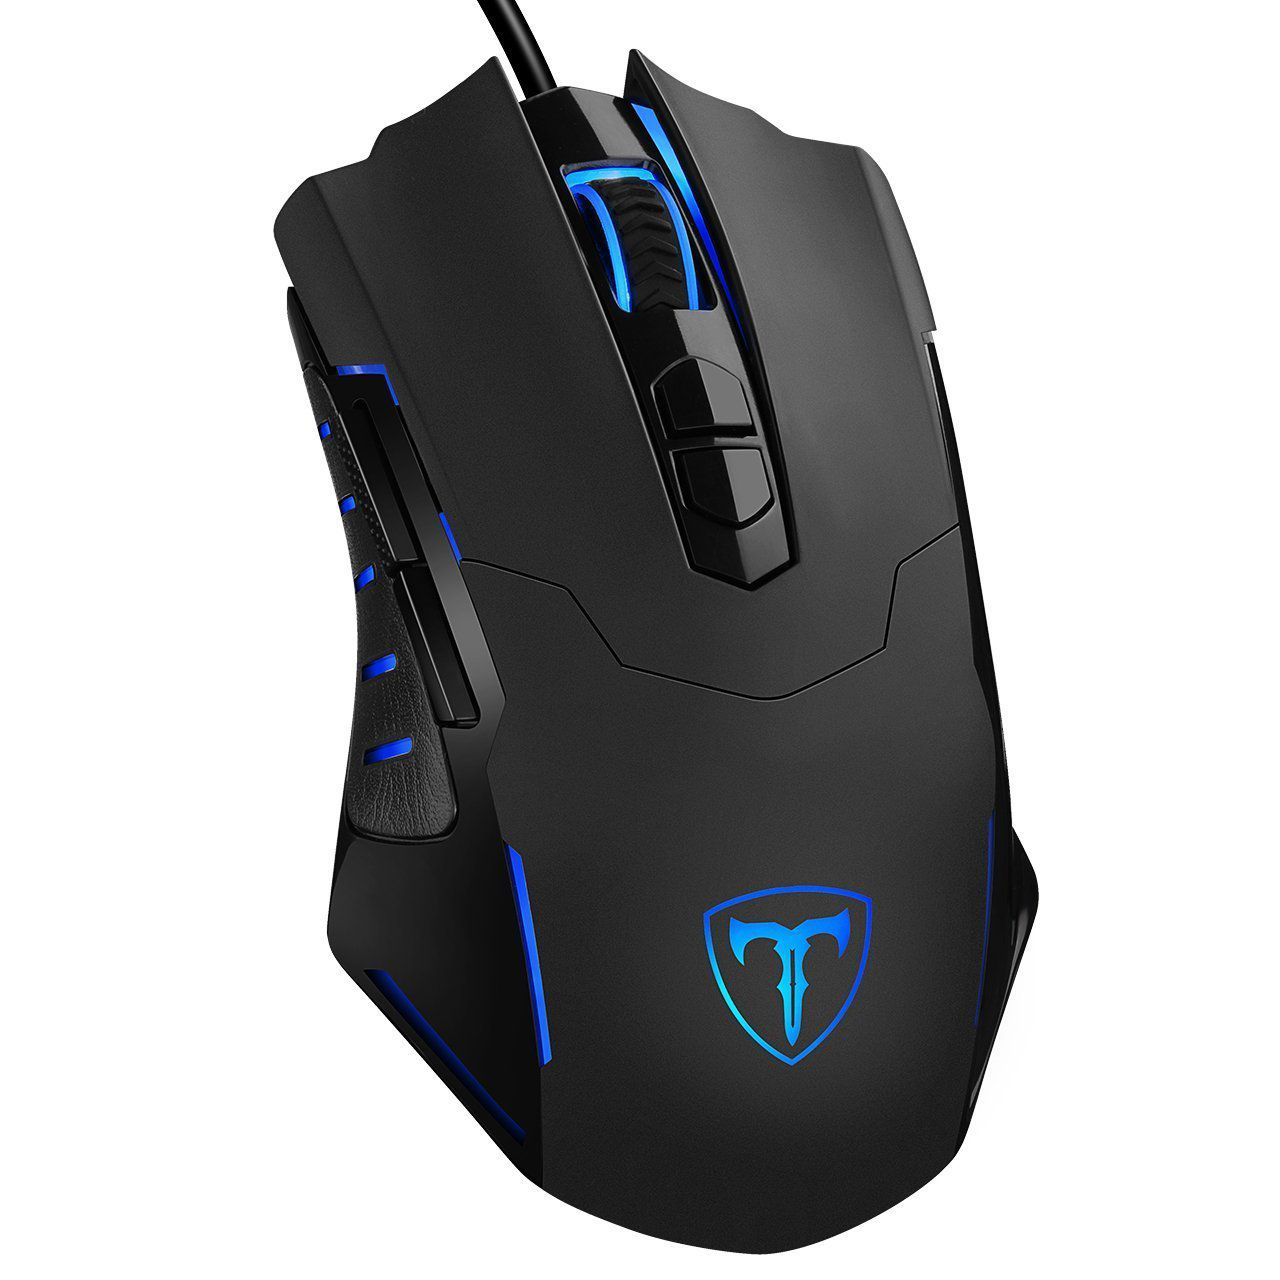 PICTEK Gaming Mouse, black, with electric blue light-up logo and scroll wheel